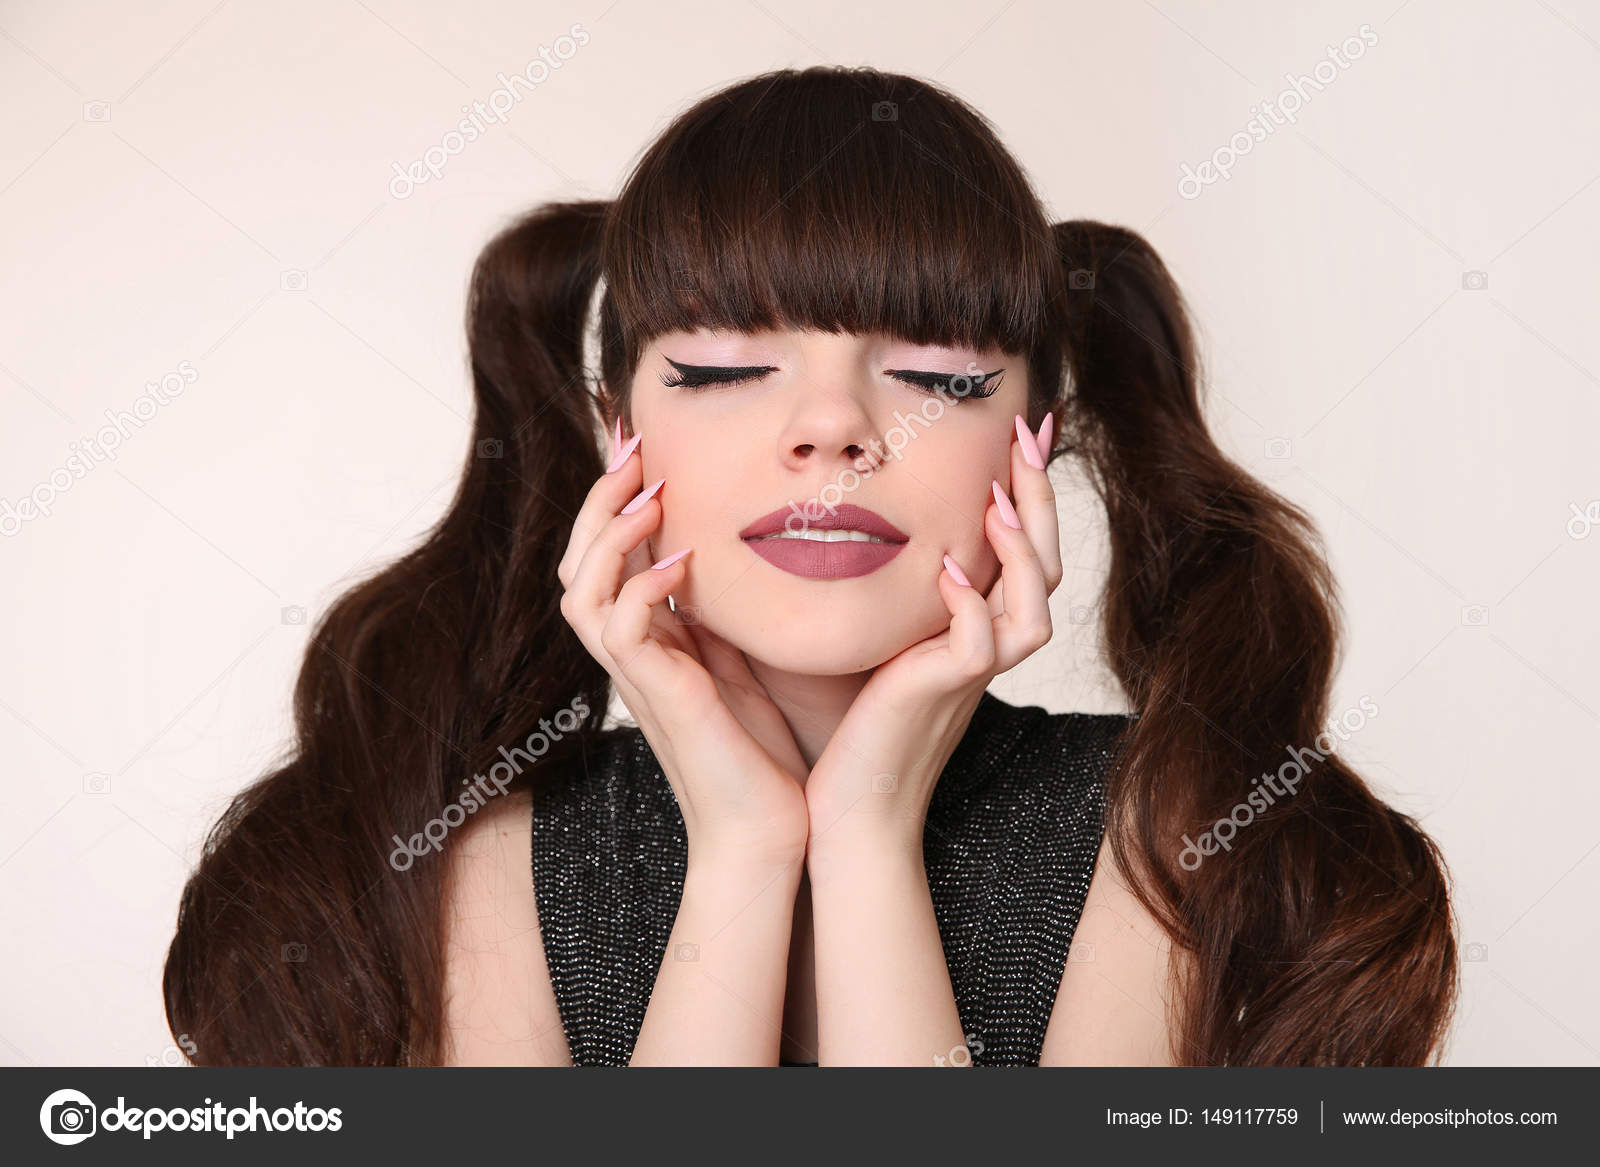 Beauty Teen Makeup And Hairstyle Teenage Girl With Hair Tail An